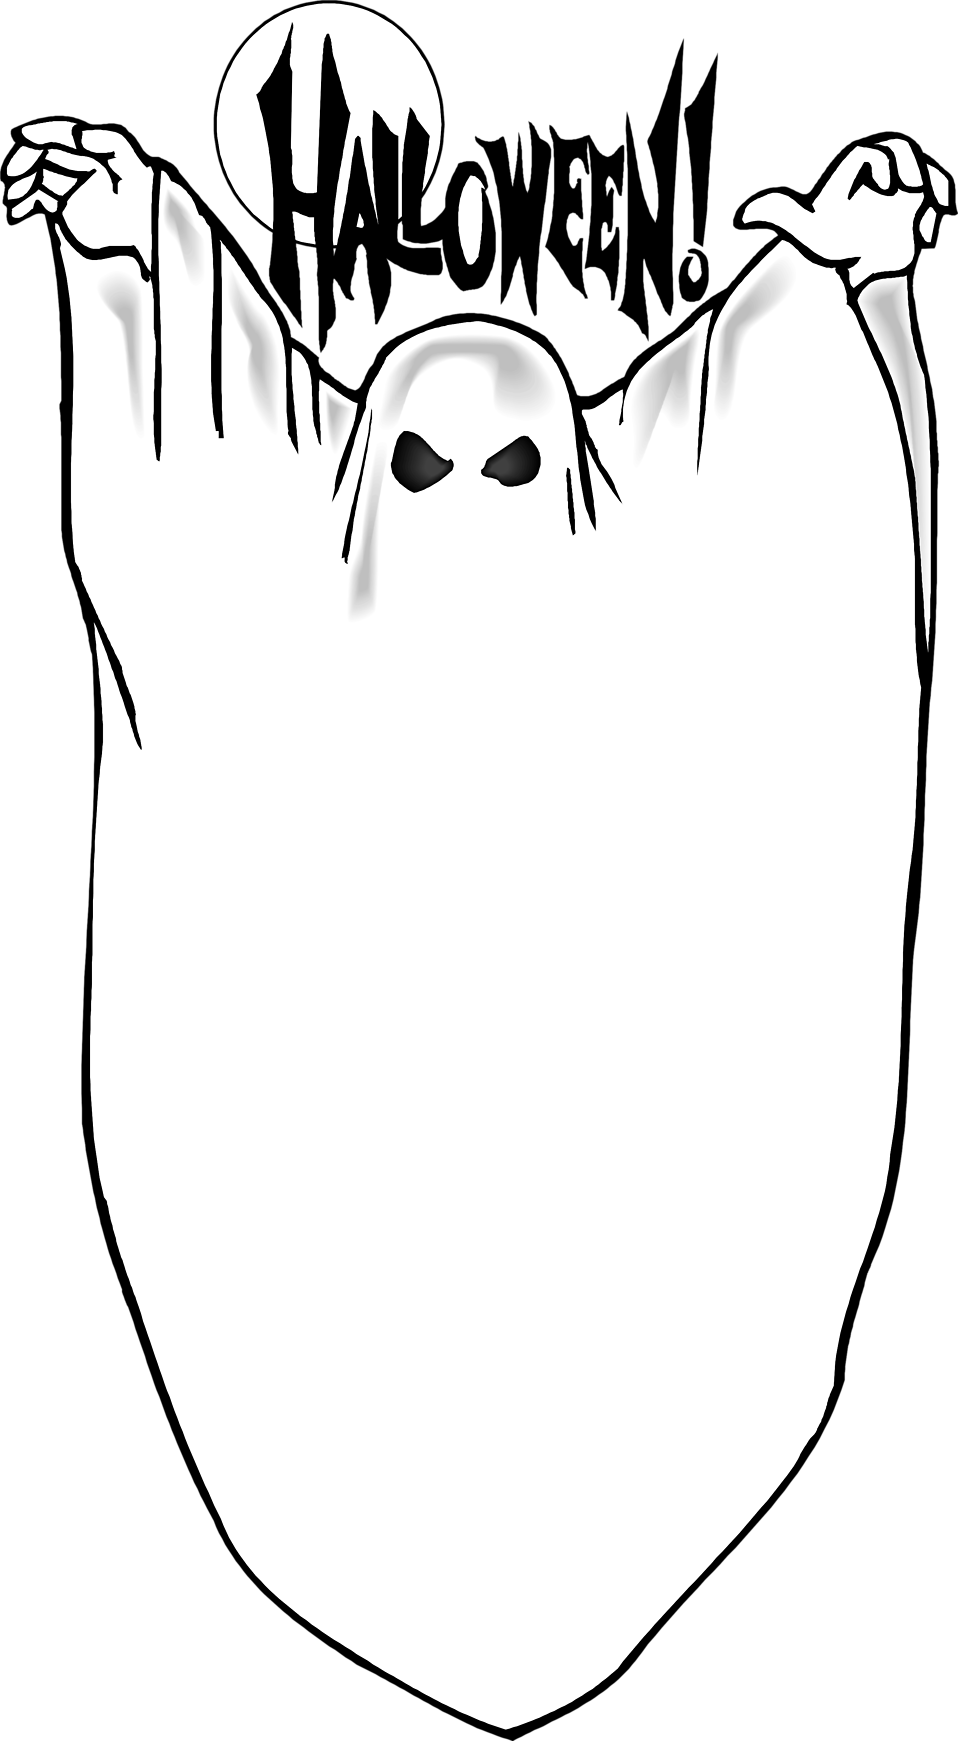 Ghostly clipart blank Text Illustration ghost Free a